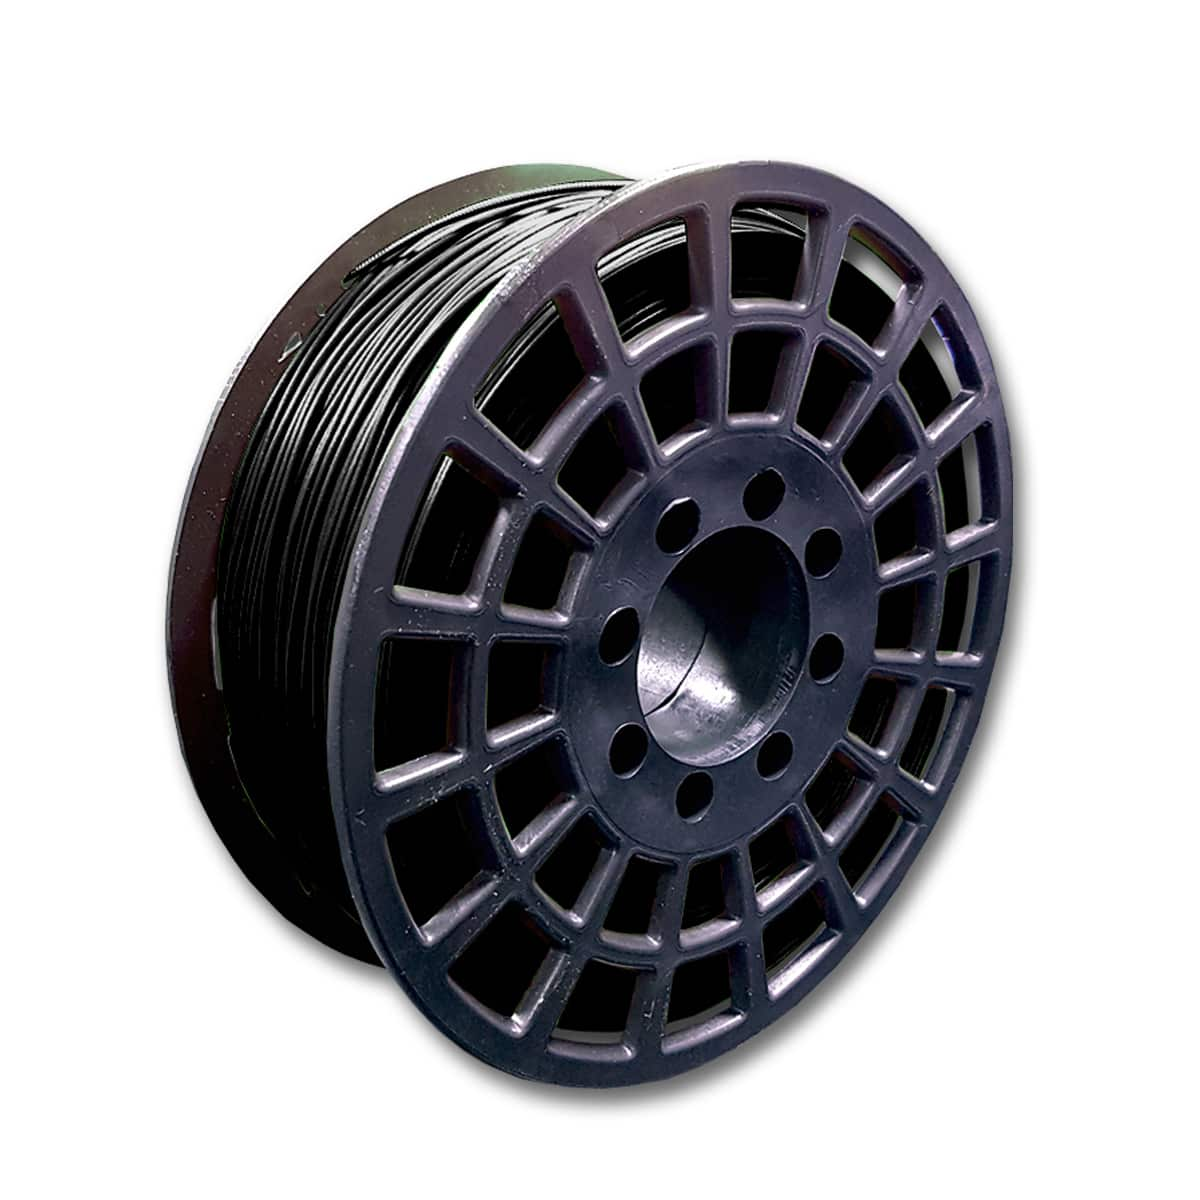 3D PLA+ 3D Printer Filament $12.99 1kg each when you buy 10 or more, FREE SHIPPING